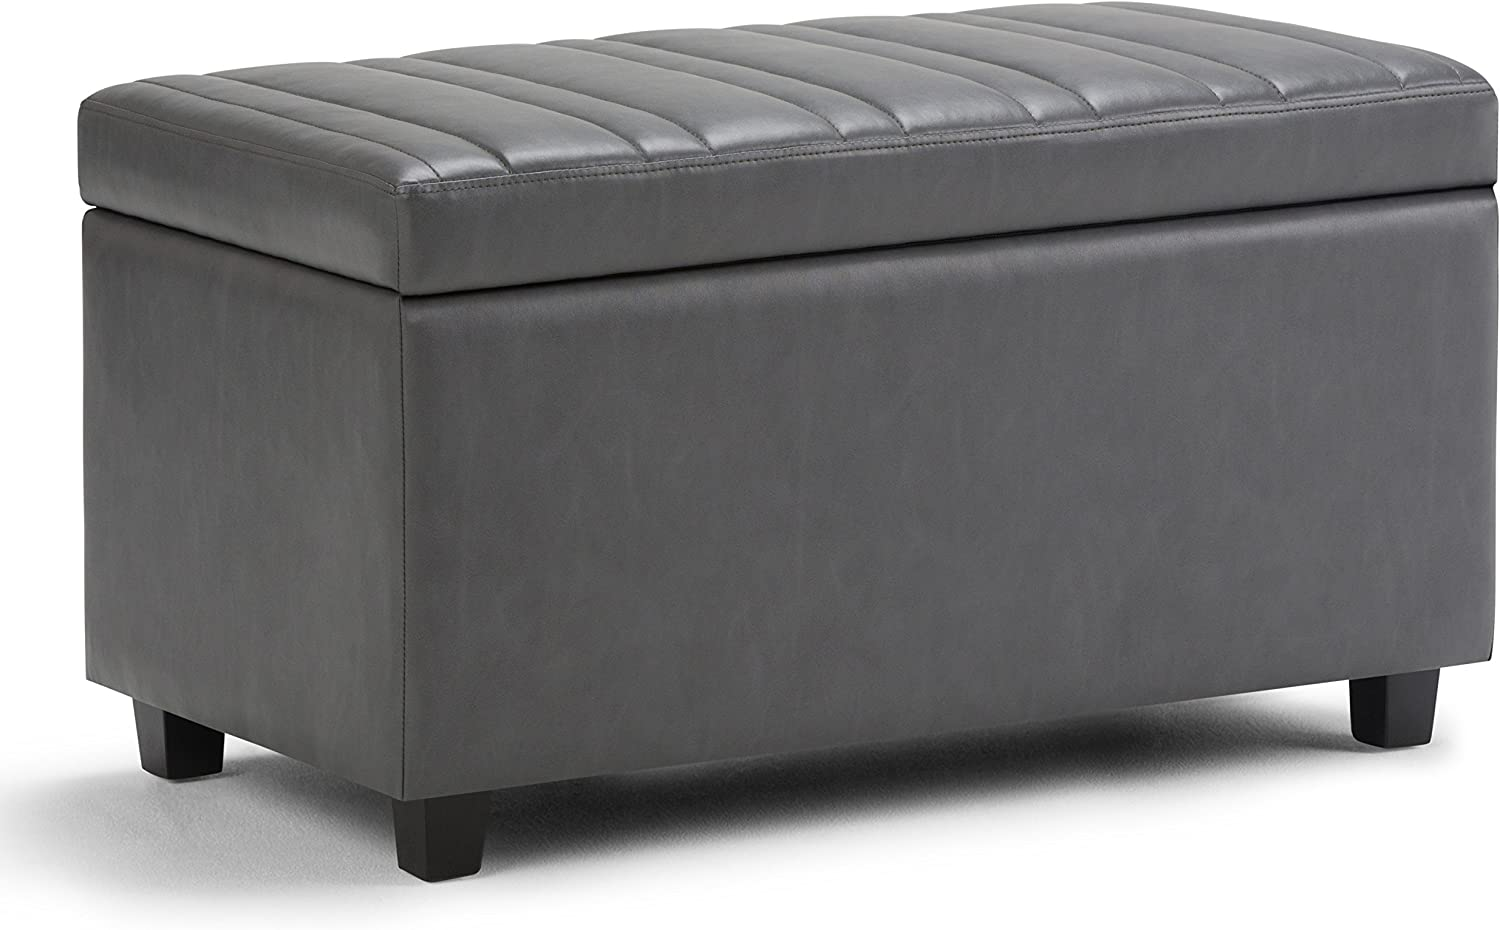 Simpli Home AXCOT-259-G Darcy 34 inch Wide ContemporaryStorage Ottoman in Stone Grey Faux Leather